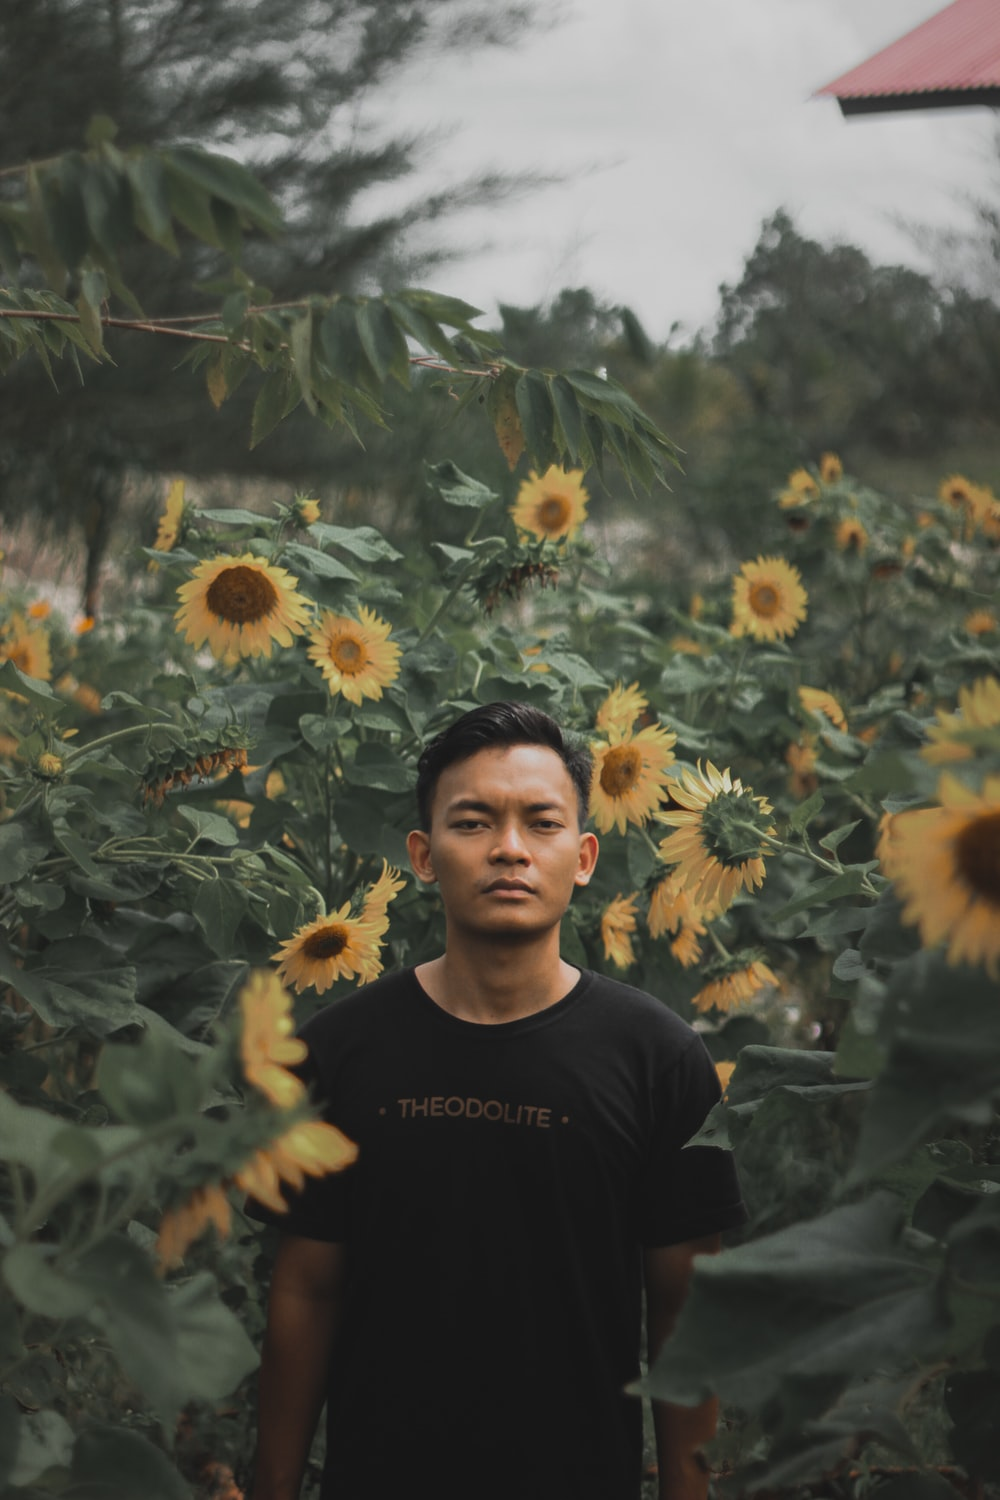 selective focus photography of man surrounded with sunflowers